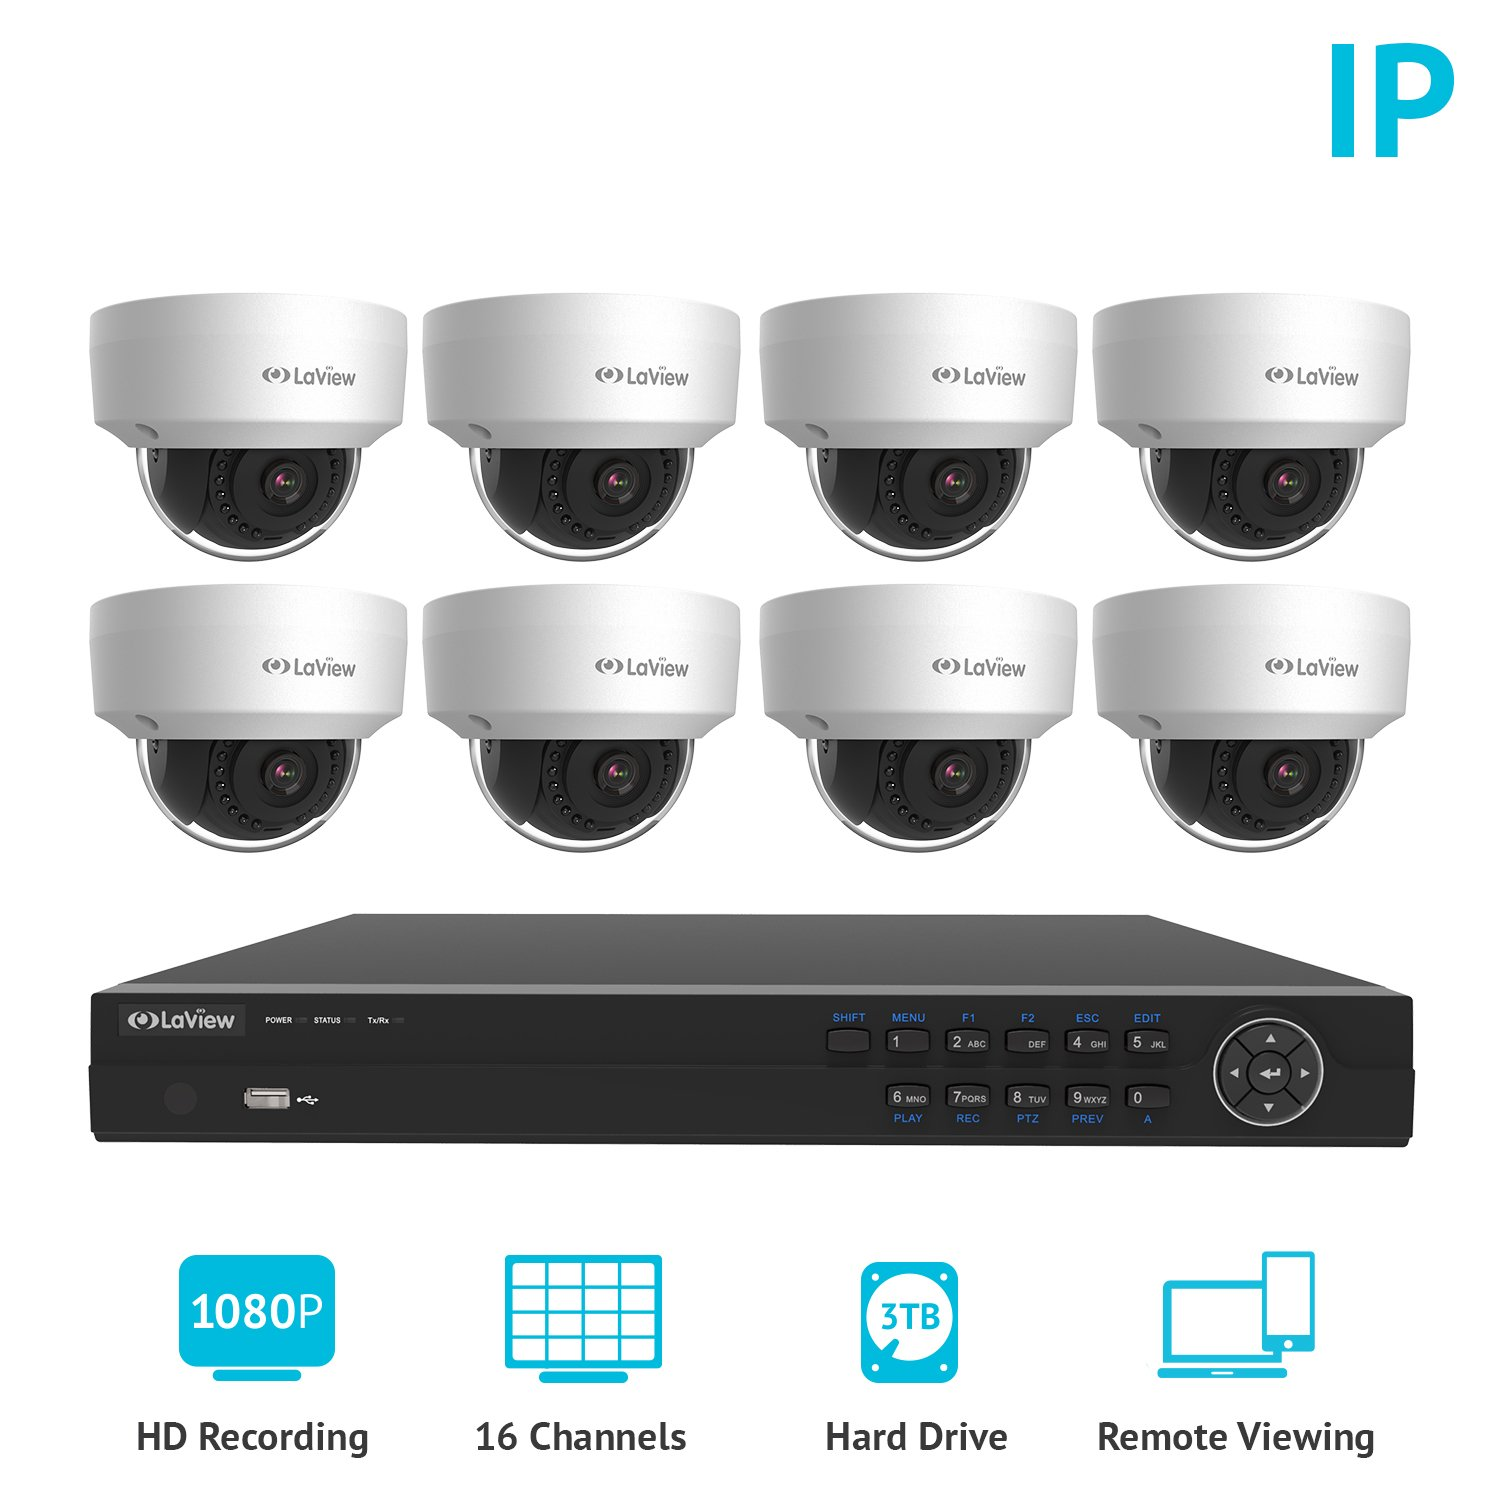 LaView 1080P 2MP HD IP 8 Weatherproof Dome Camera Security System 16 Channel PoE 1080P NVR with a 3TB HDD Indoor/Outdoor Cameras Day/Night Surveillance System with Remote Viewing by LaView